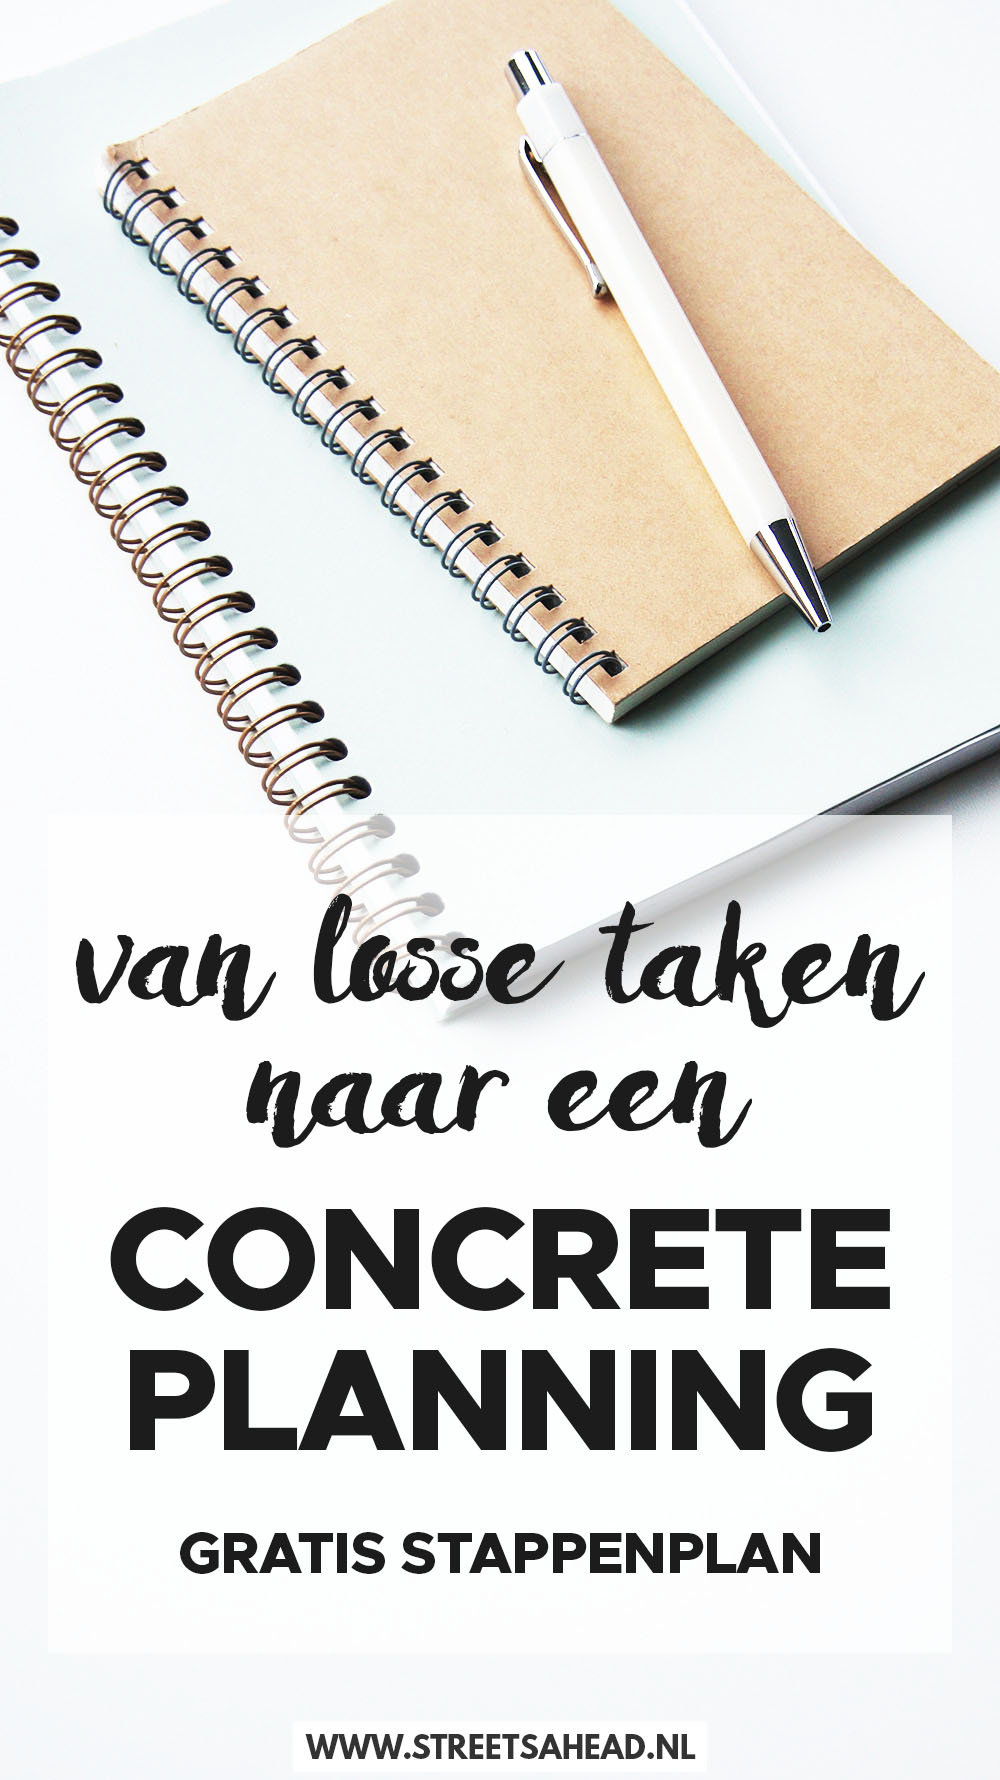 Download nu: stappenplan van losse taken naar concrete planning